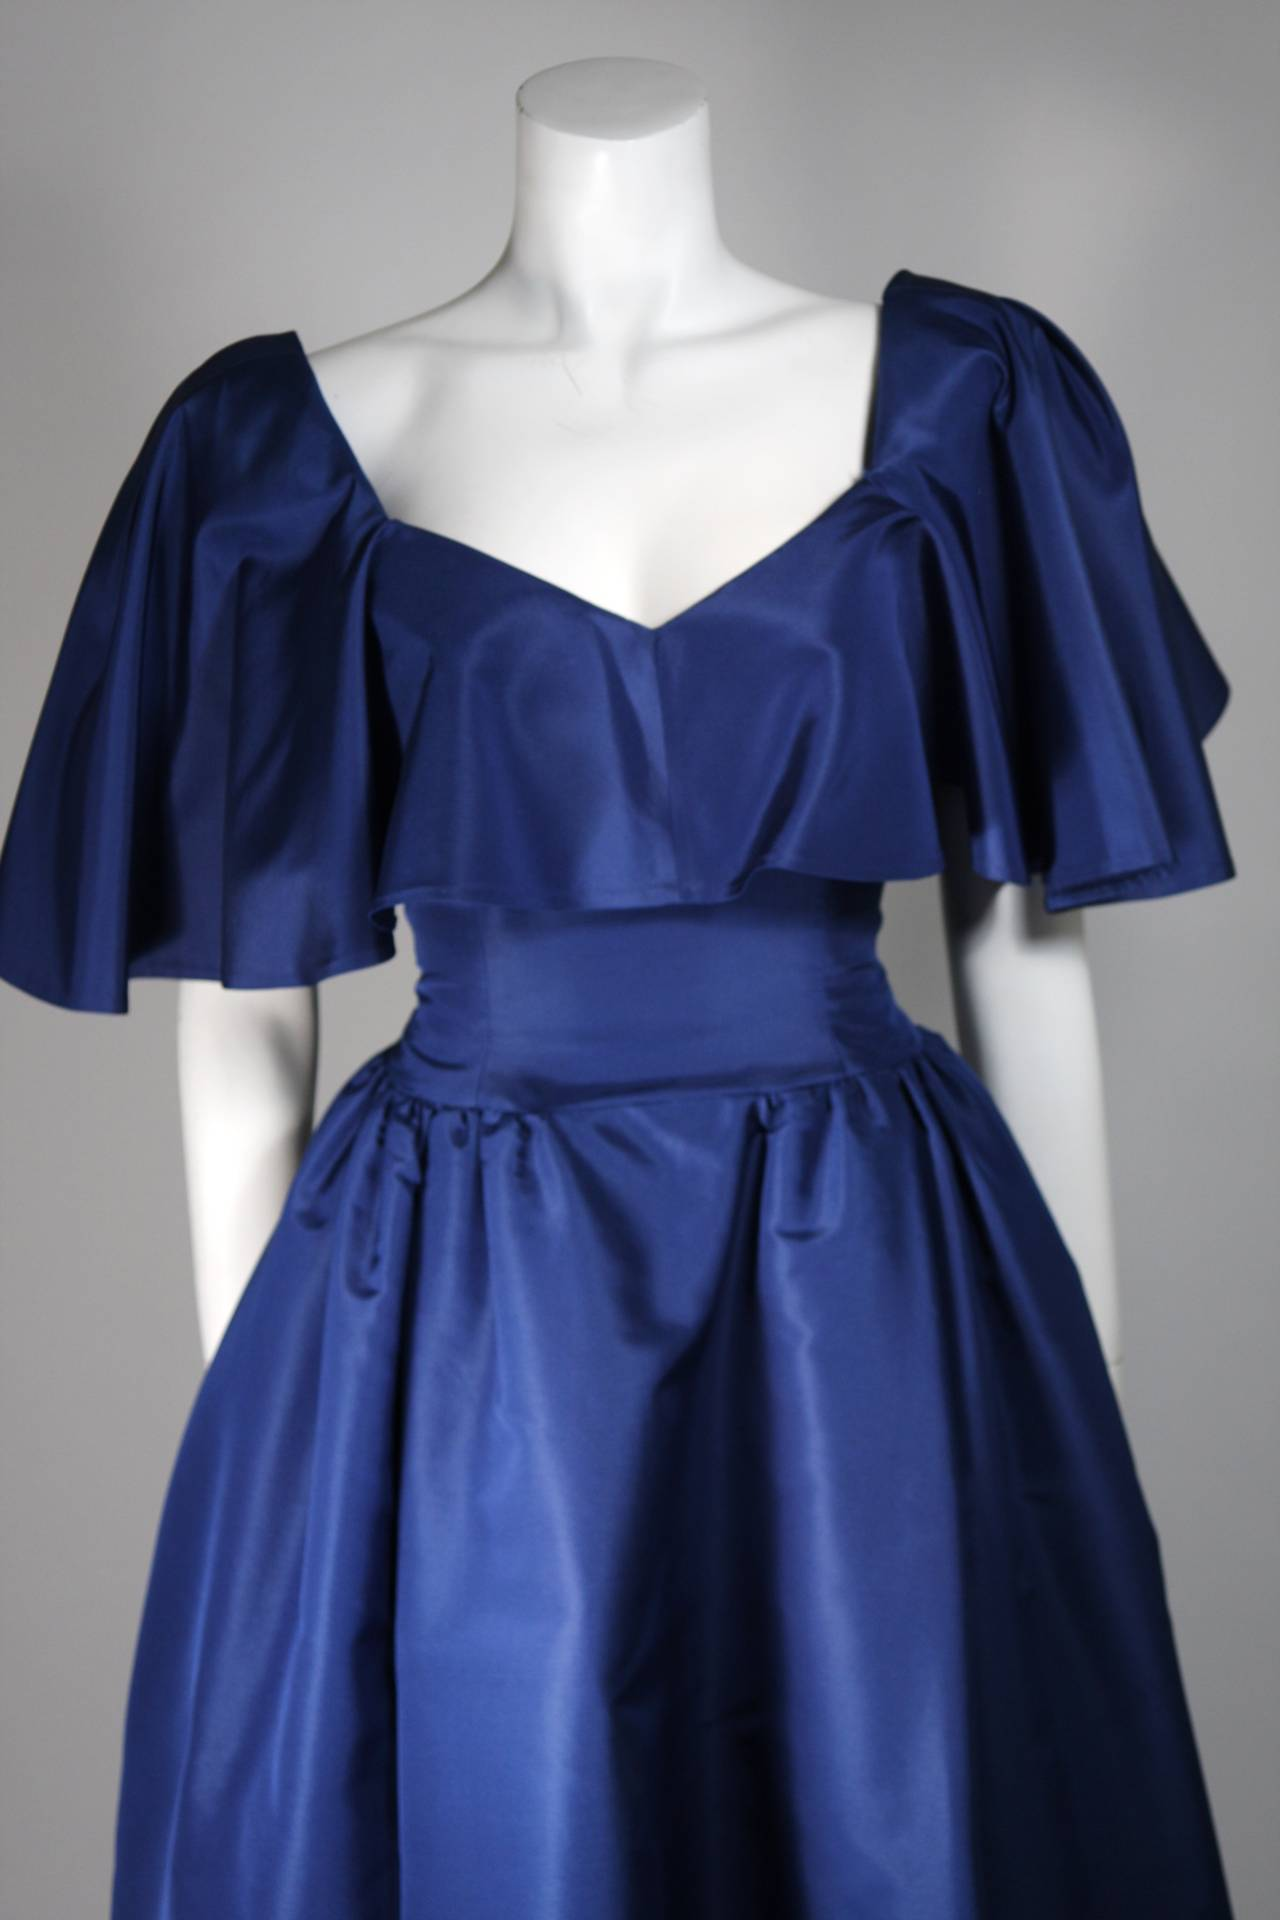 Circa 1980s Pauline Trigere Midnight Blue Faille Ball Gown with Cape Collar 6 3